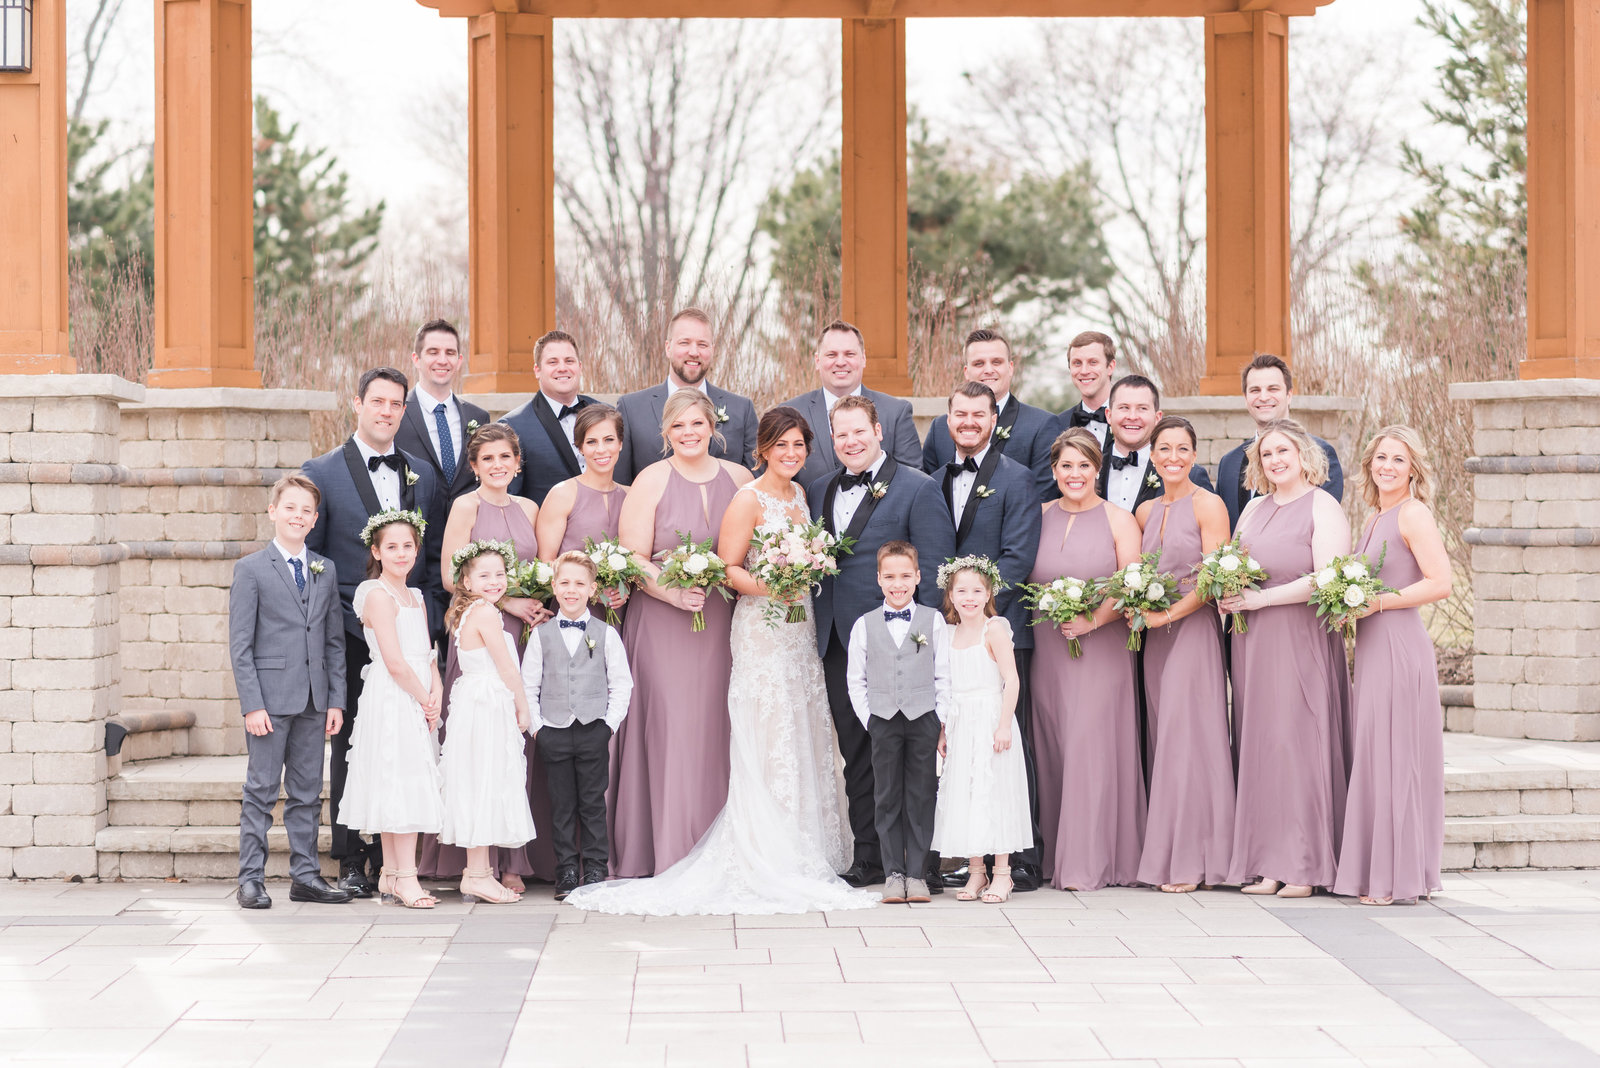 Bridal party photo at Chevy Chase Country Club